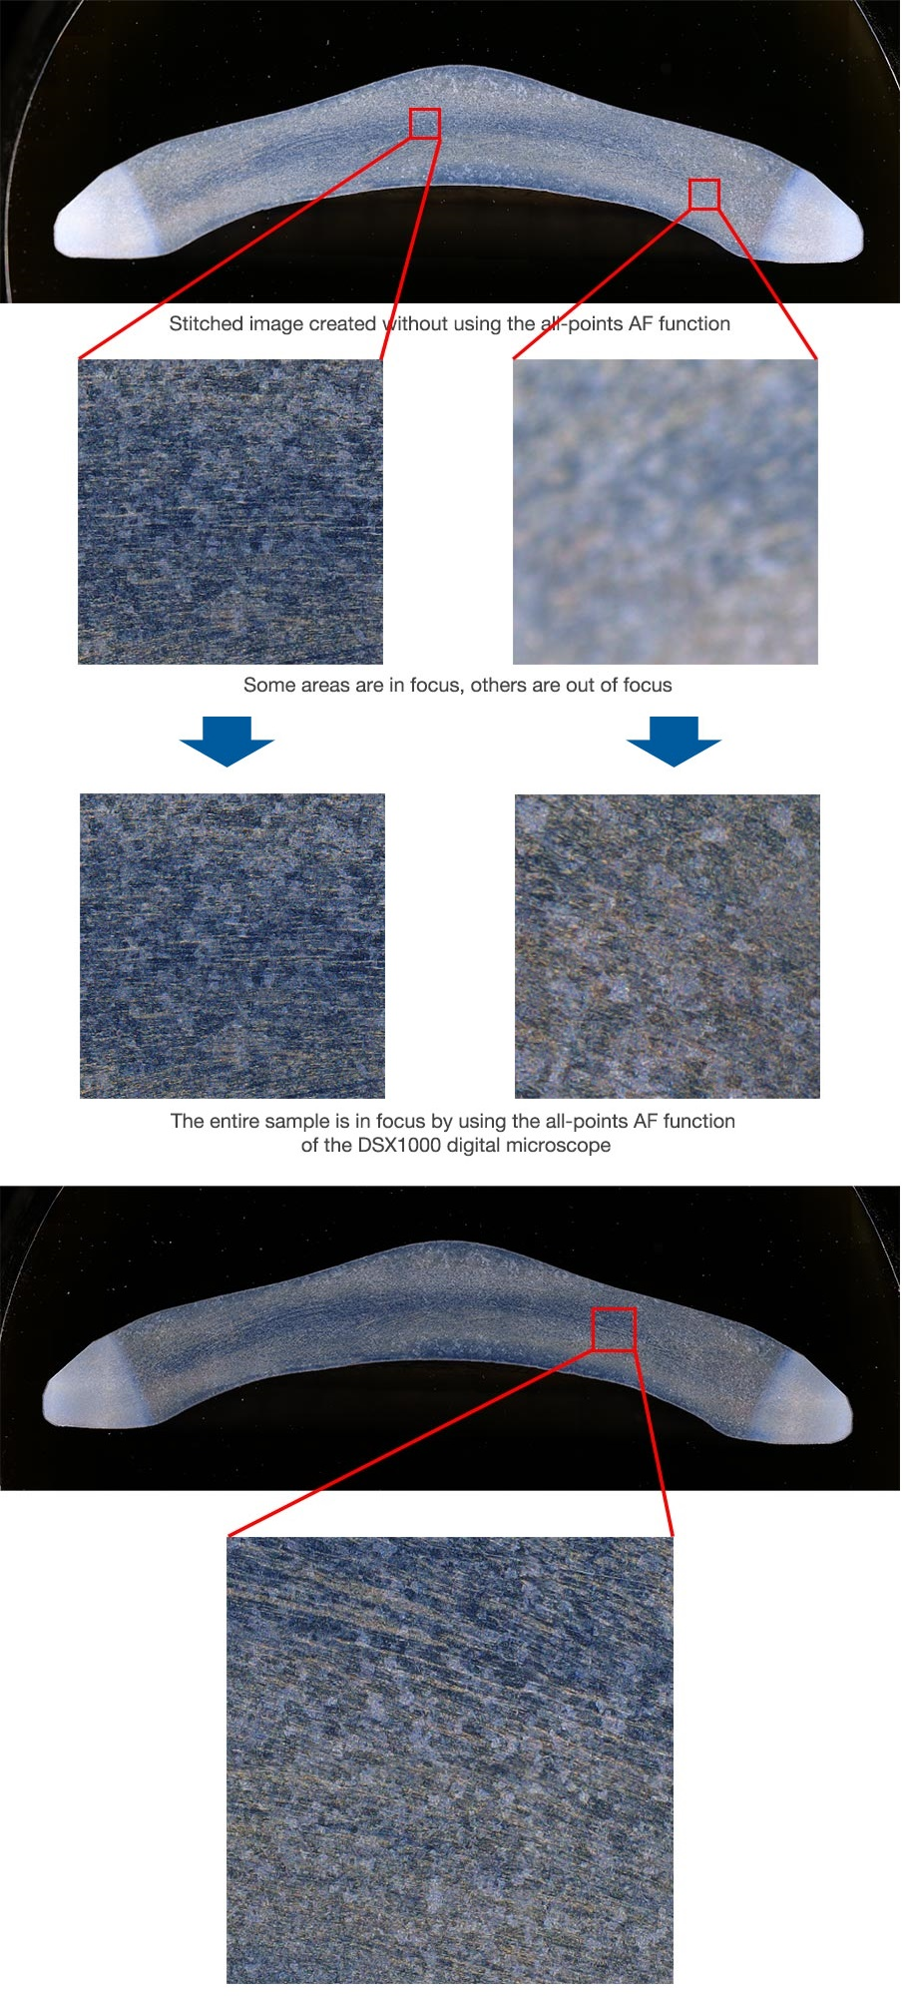 An auto-pasted image of a forged part made from several high-magnification images captured by the DSX1000 digital microscope (140X, 6 images vertically, 17 images horizontally). The image quality is maintained if you cut and magnify a part of it.